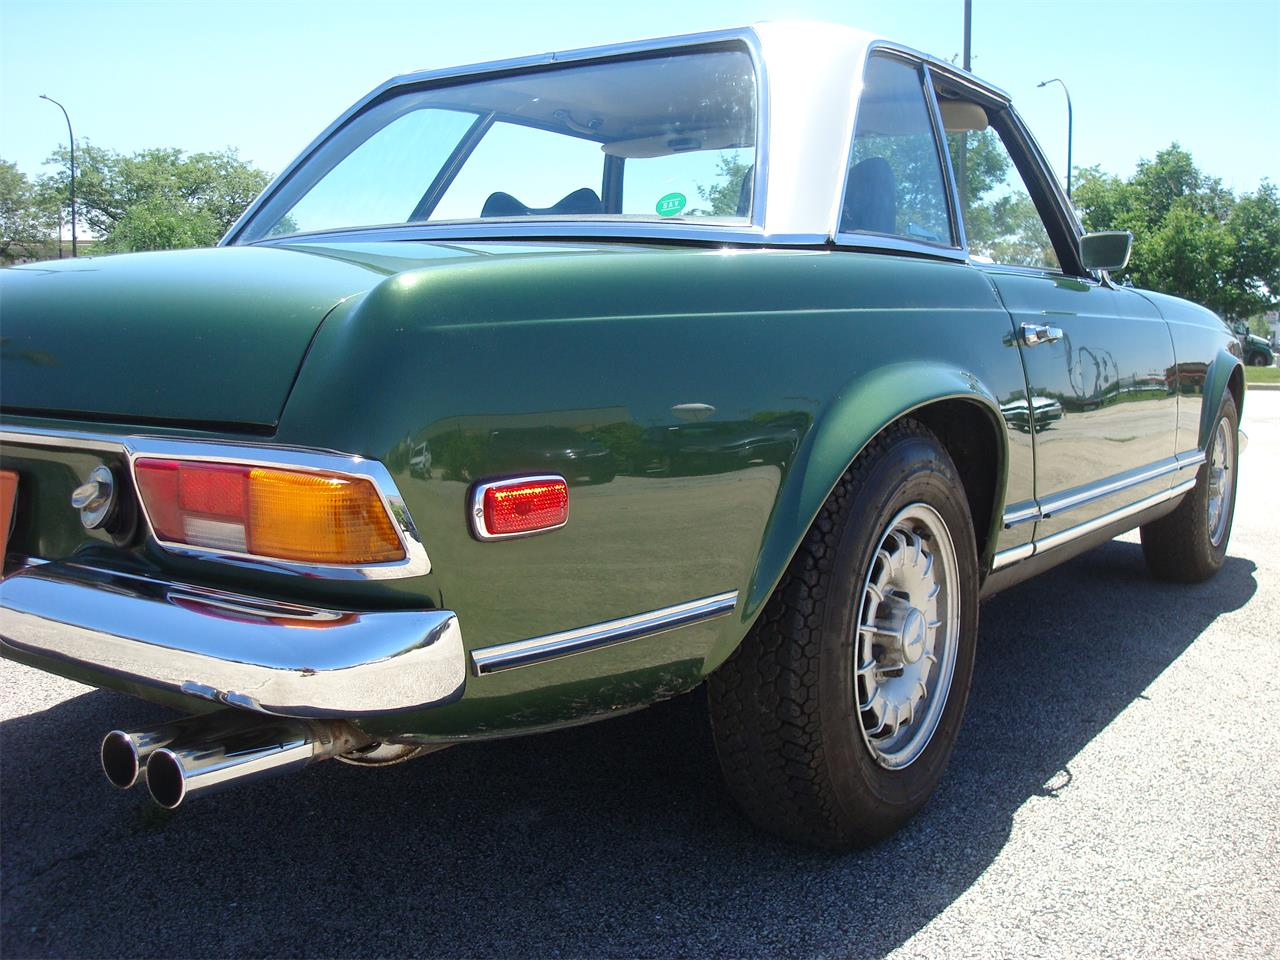 Large Picture of Classic 1969 Mercedes-Benz 280SL located in Illinois - $105,000.00 Offered by Naperville Auto Haus - NCRY